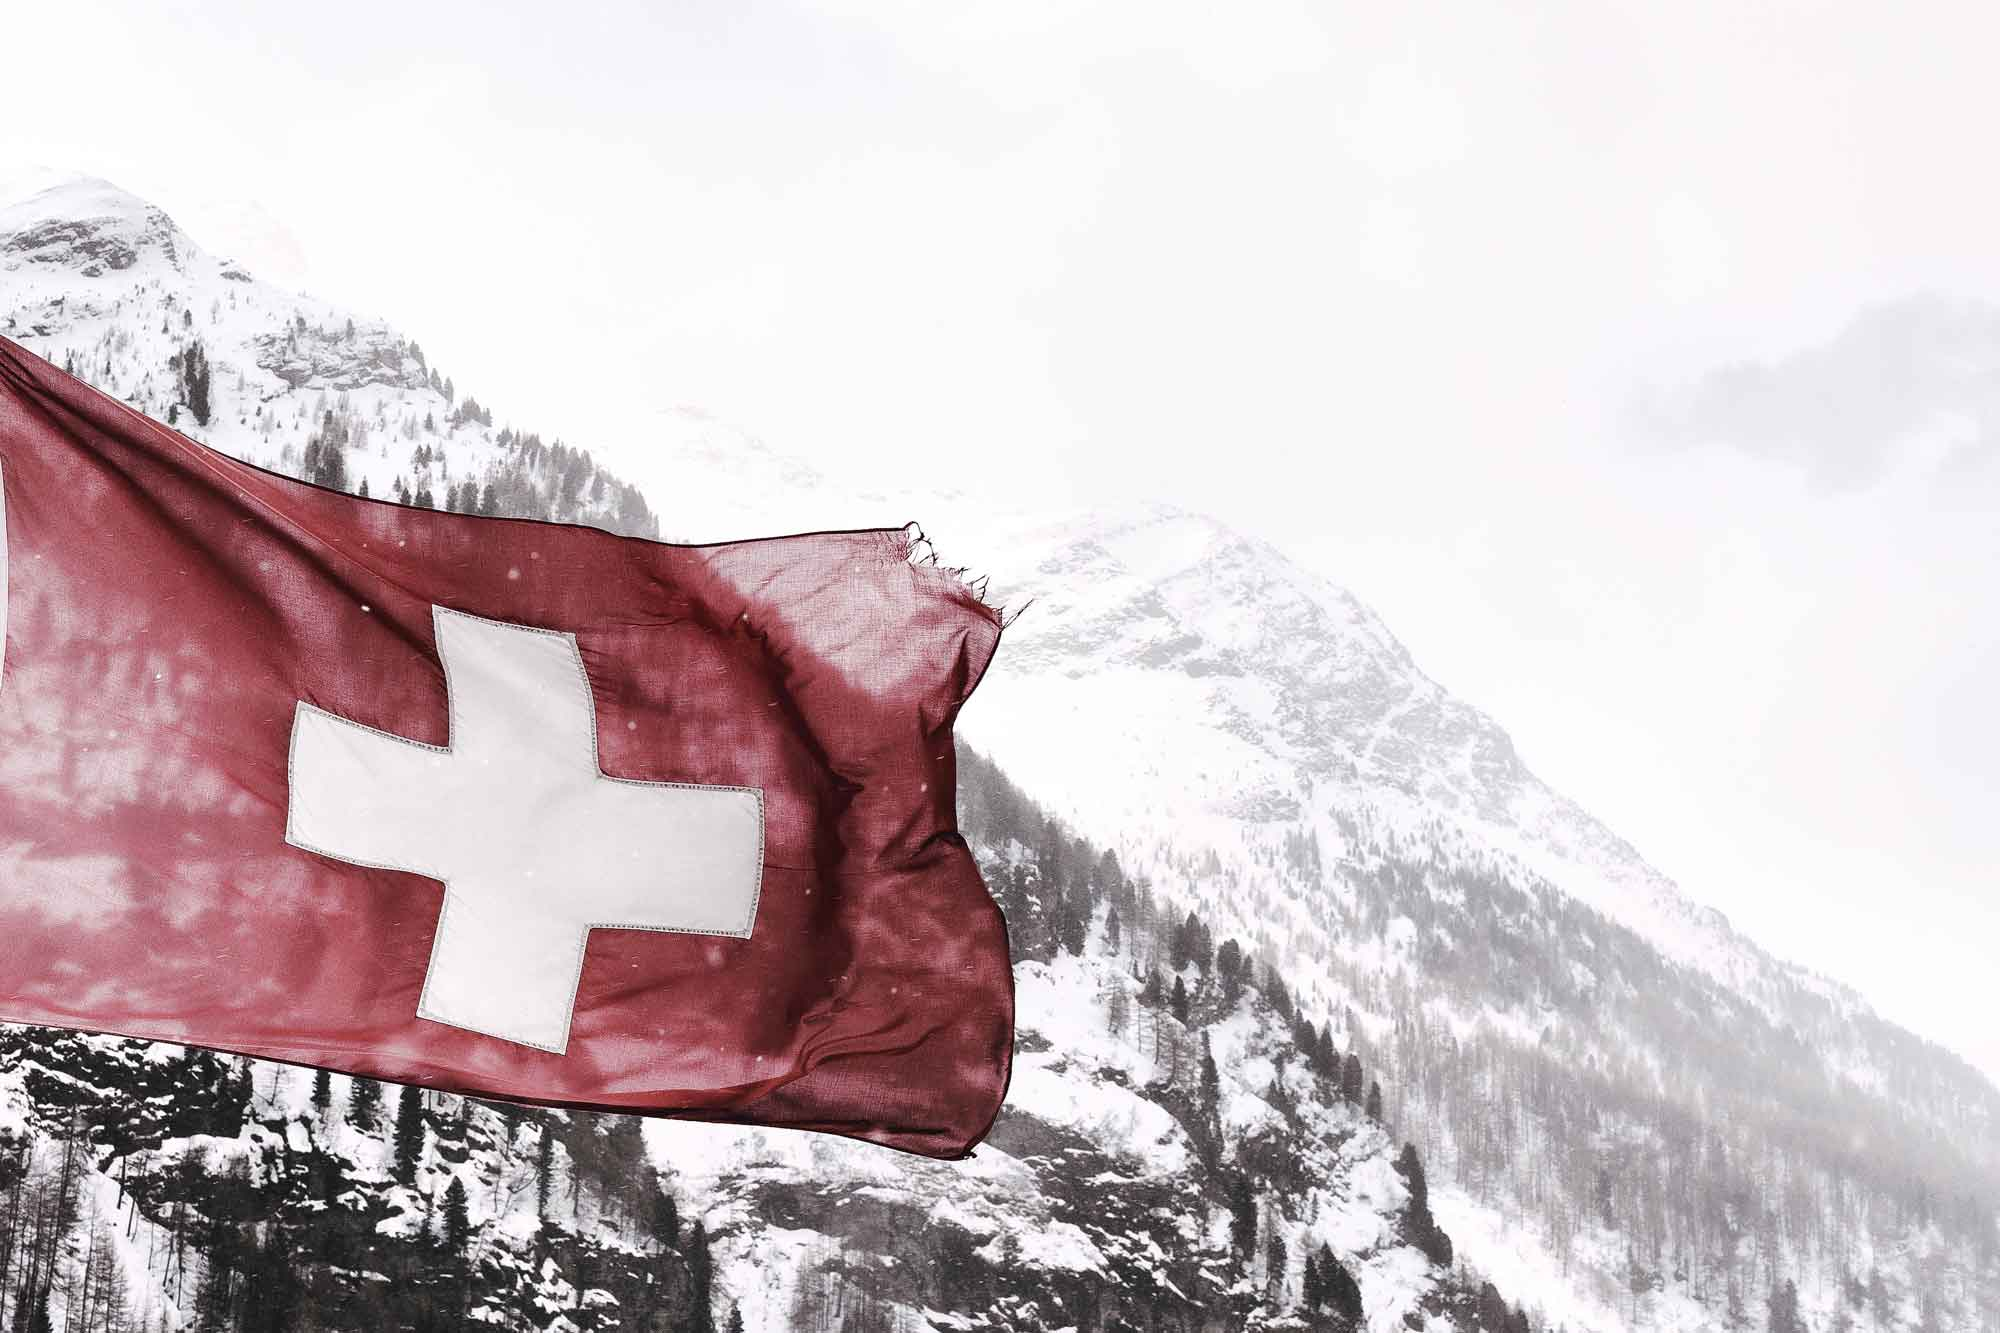 Data Protection needs to be agnostic like Switzerland